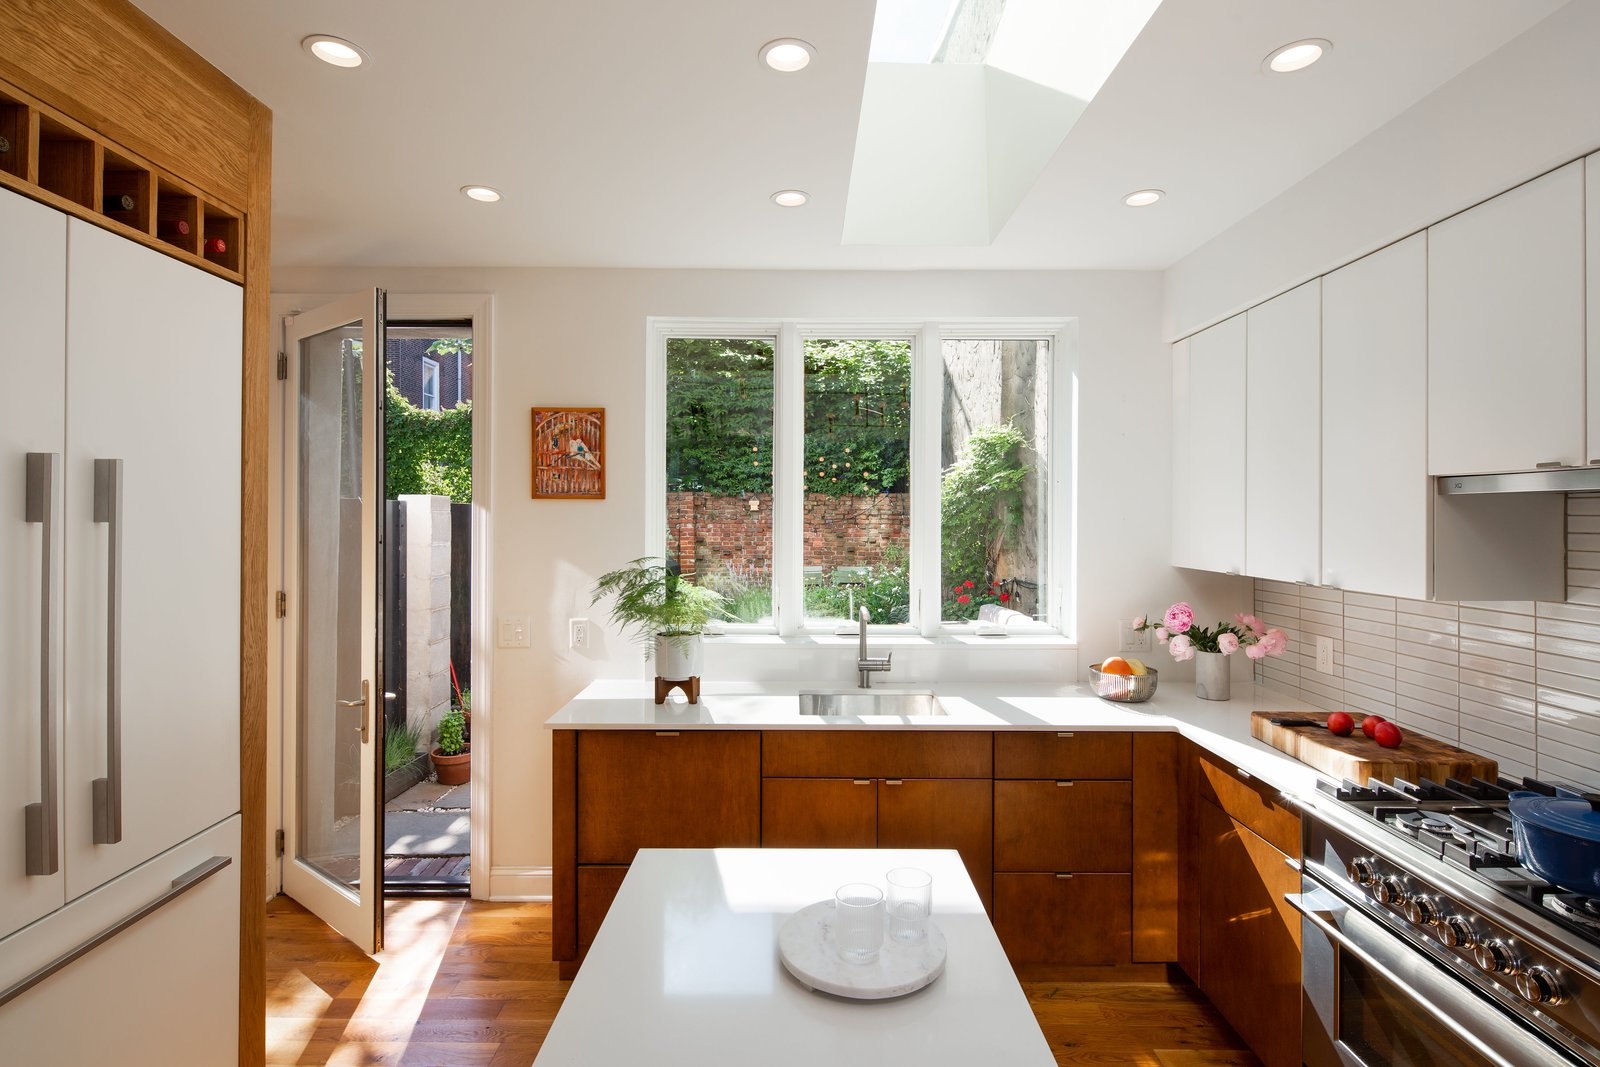 Creating a connection between the kitchen and backyard makes the room